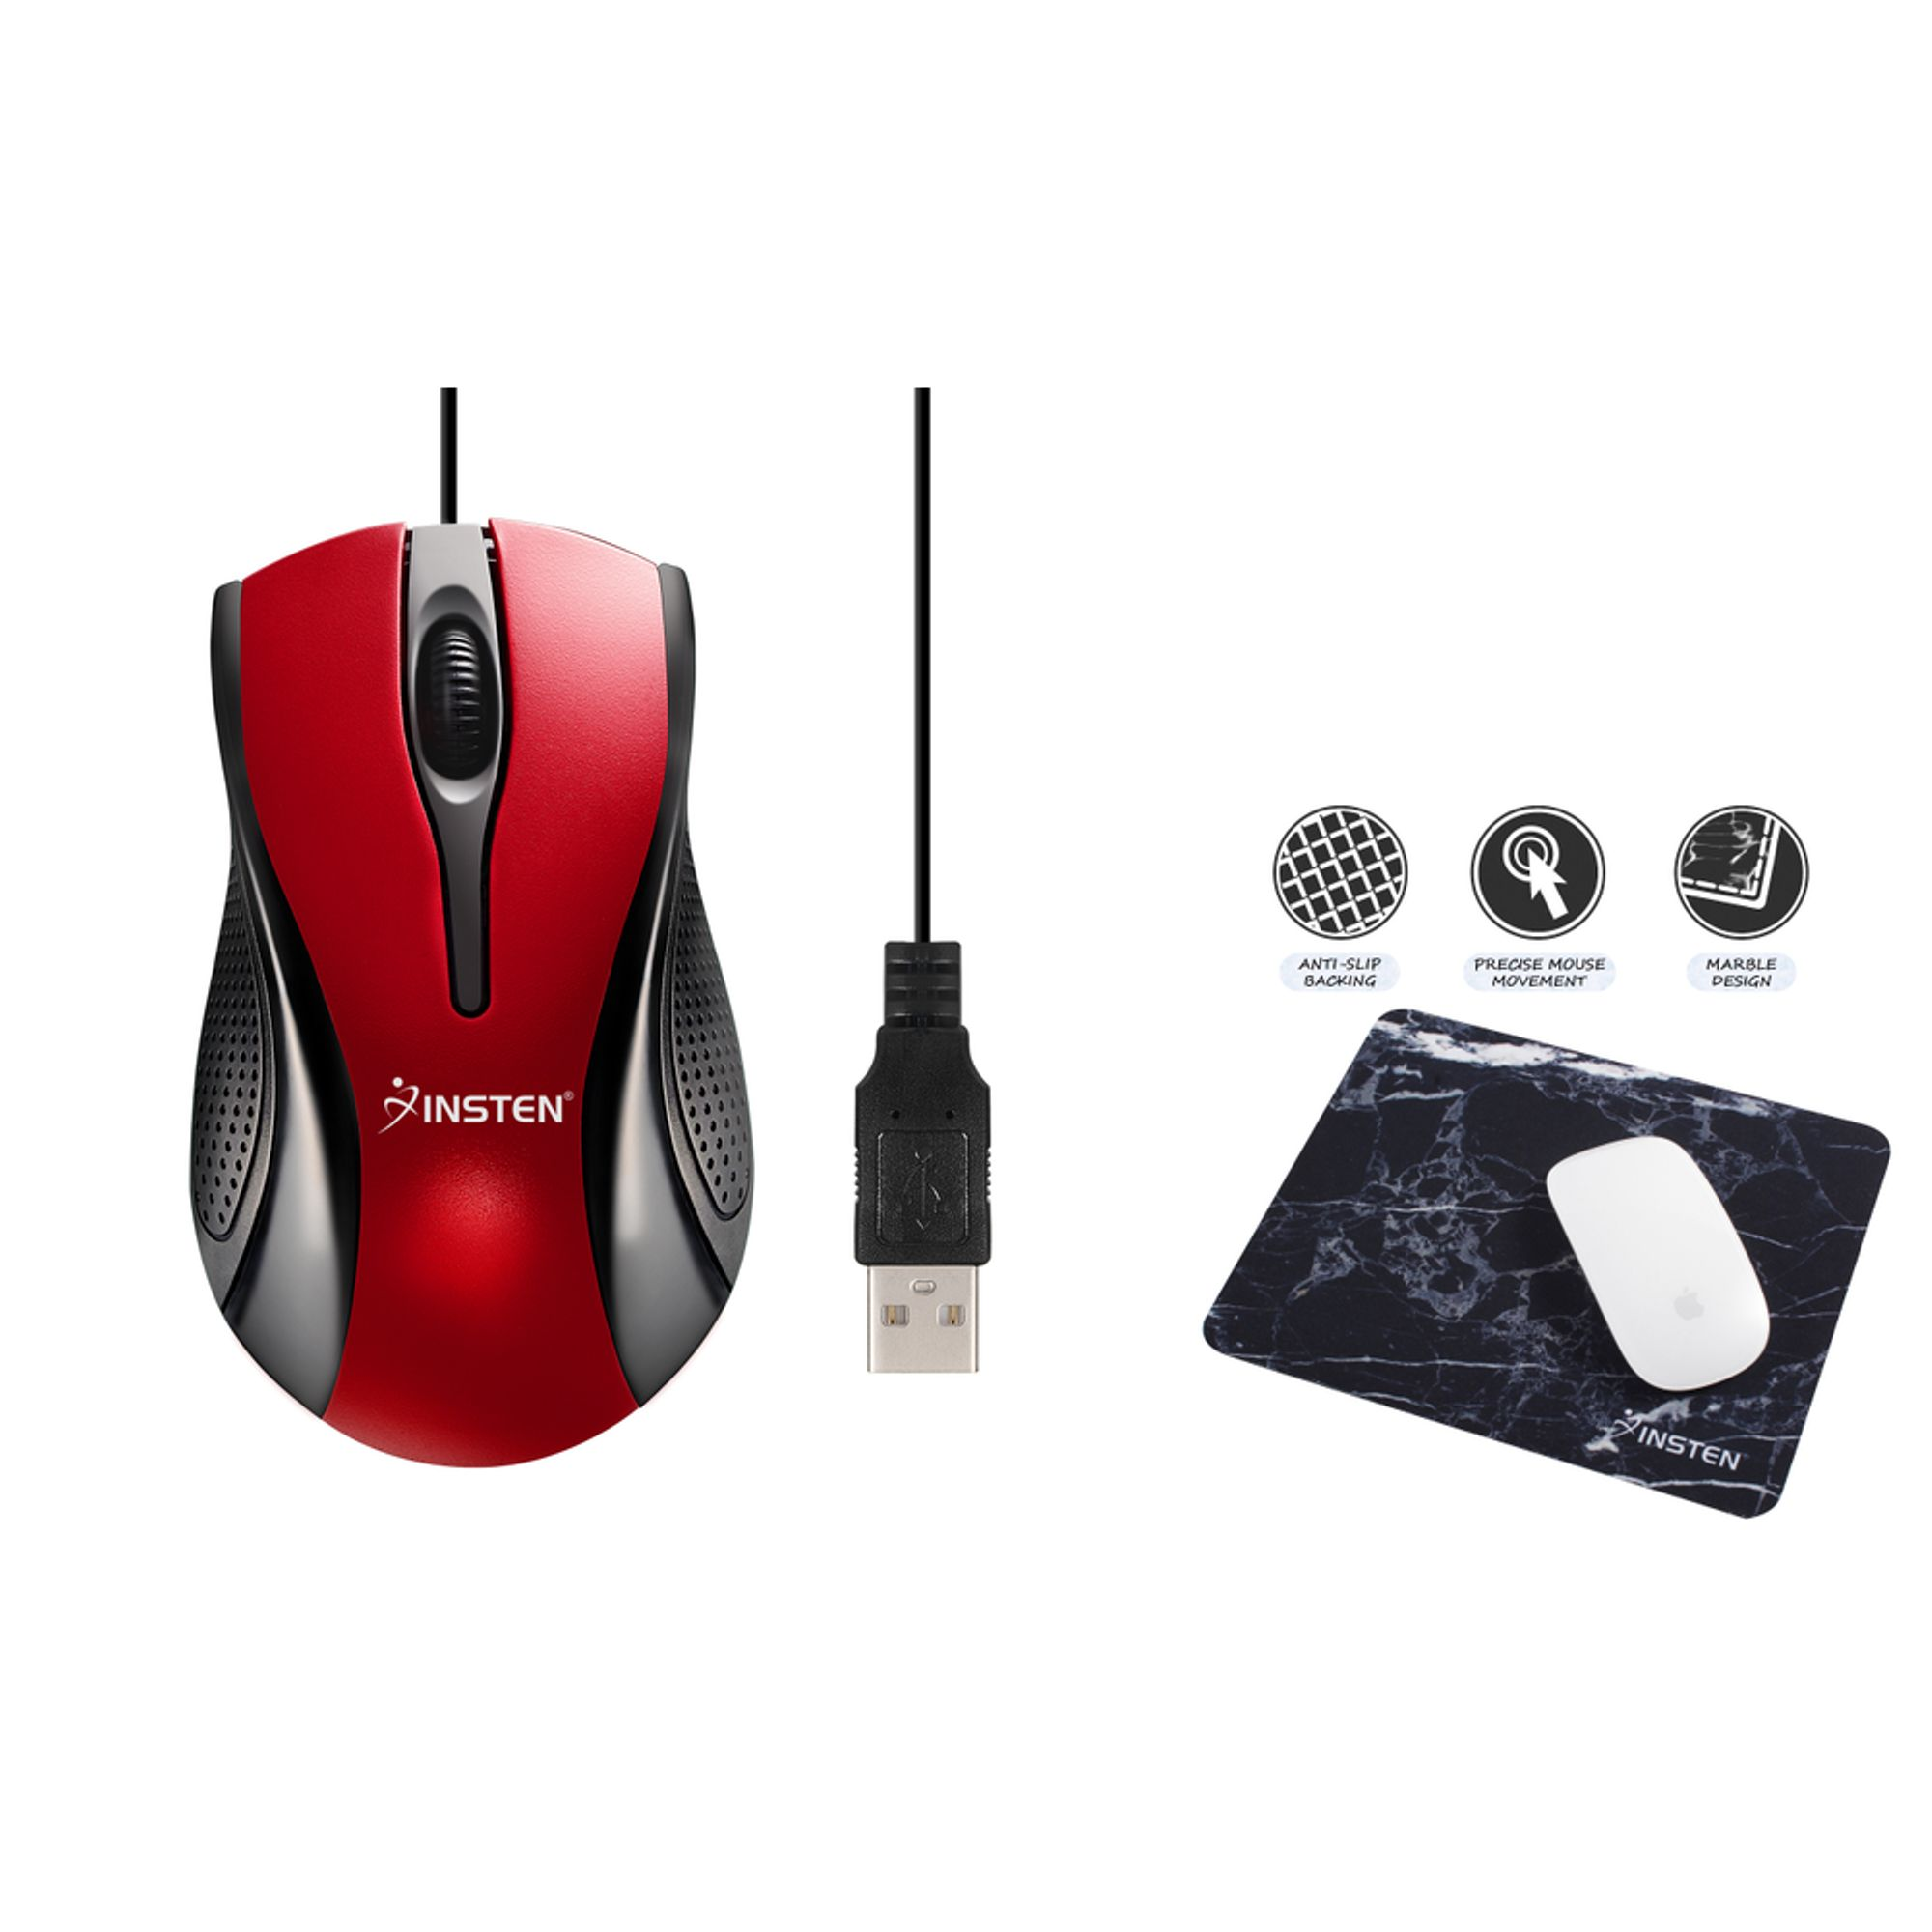 Insten Red/Black USB Optical Scroll Wheel Mouse + Black Marble Mouse Pad